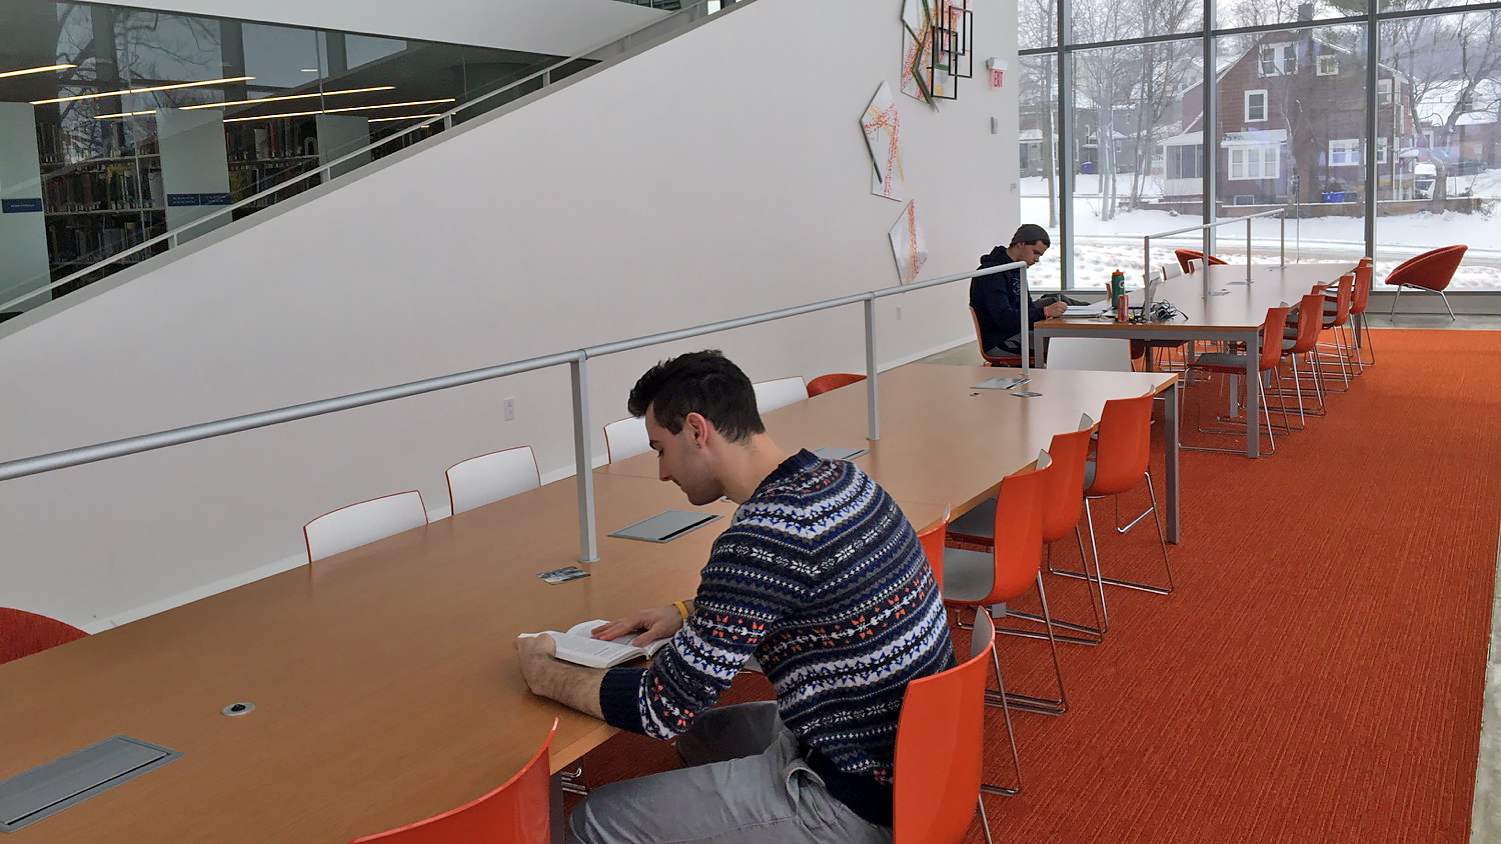 Study space available in well lit area